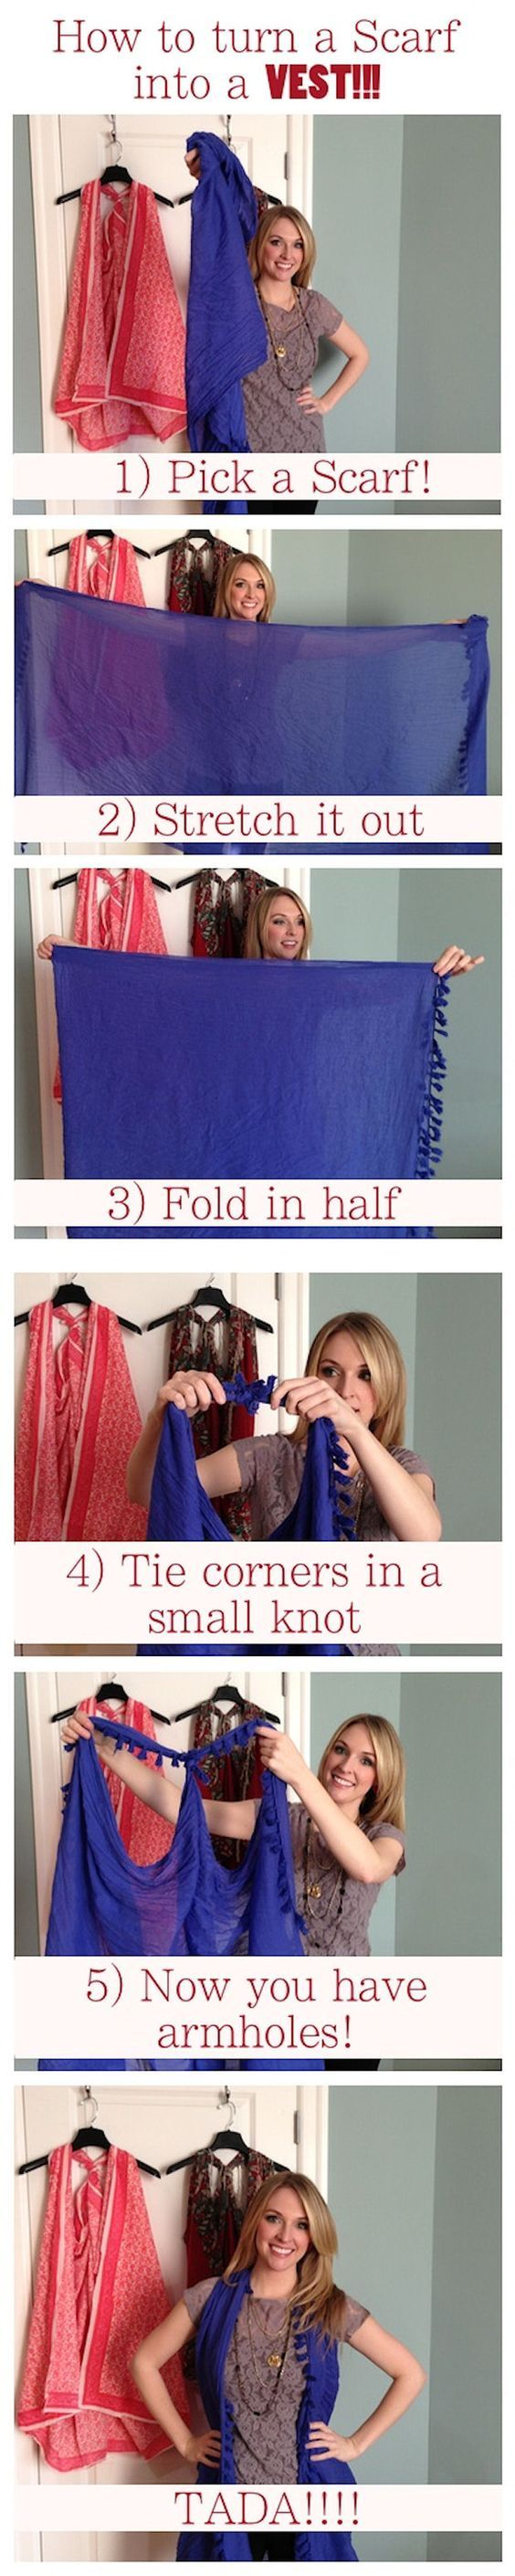 How To Turn A Scarf Into A Vest http://www.99wtf.net/category/young-style/urban-style/